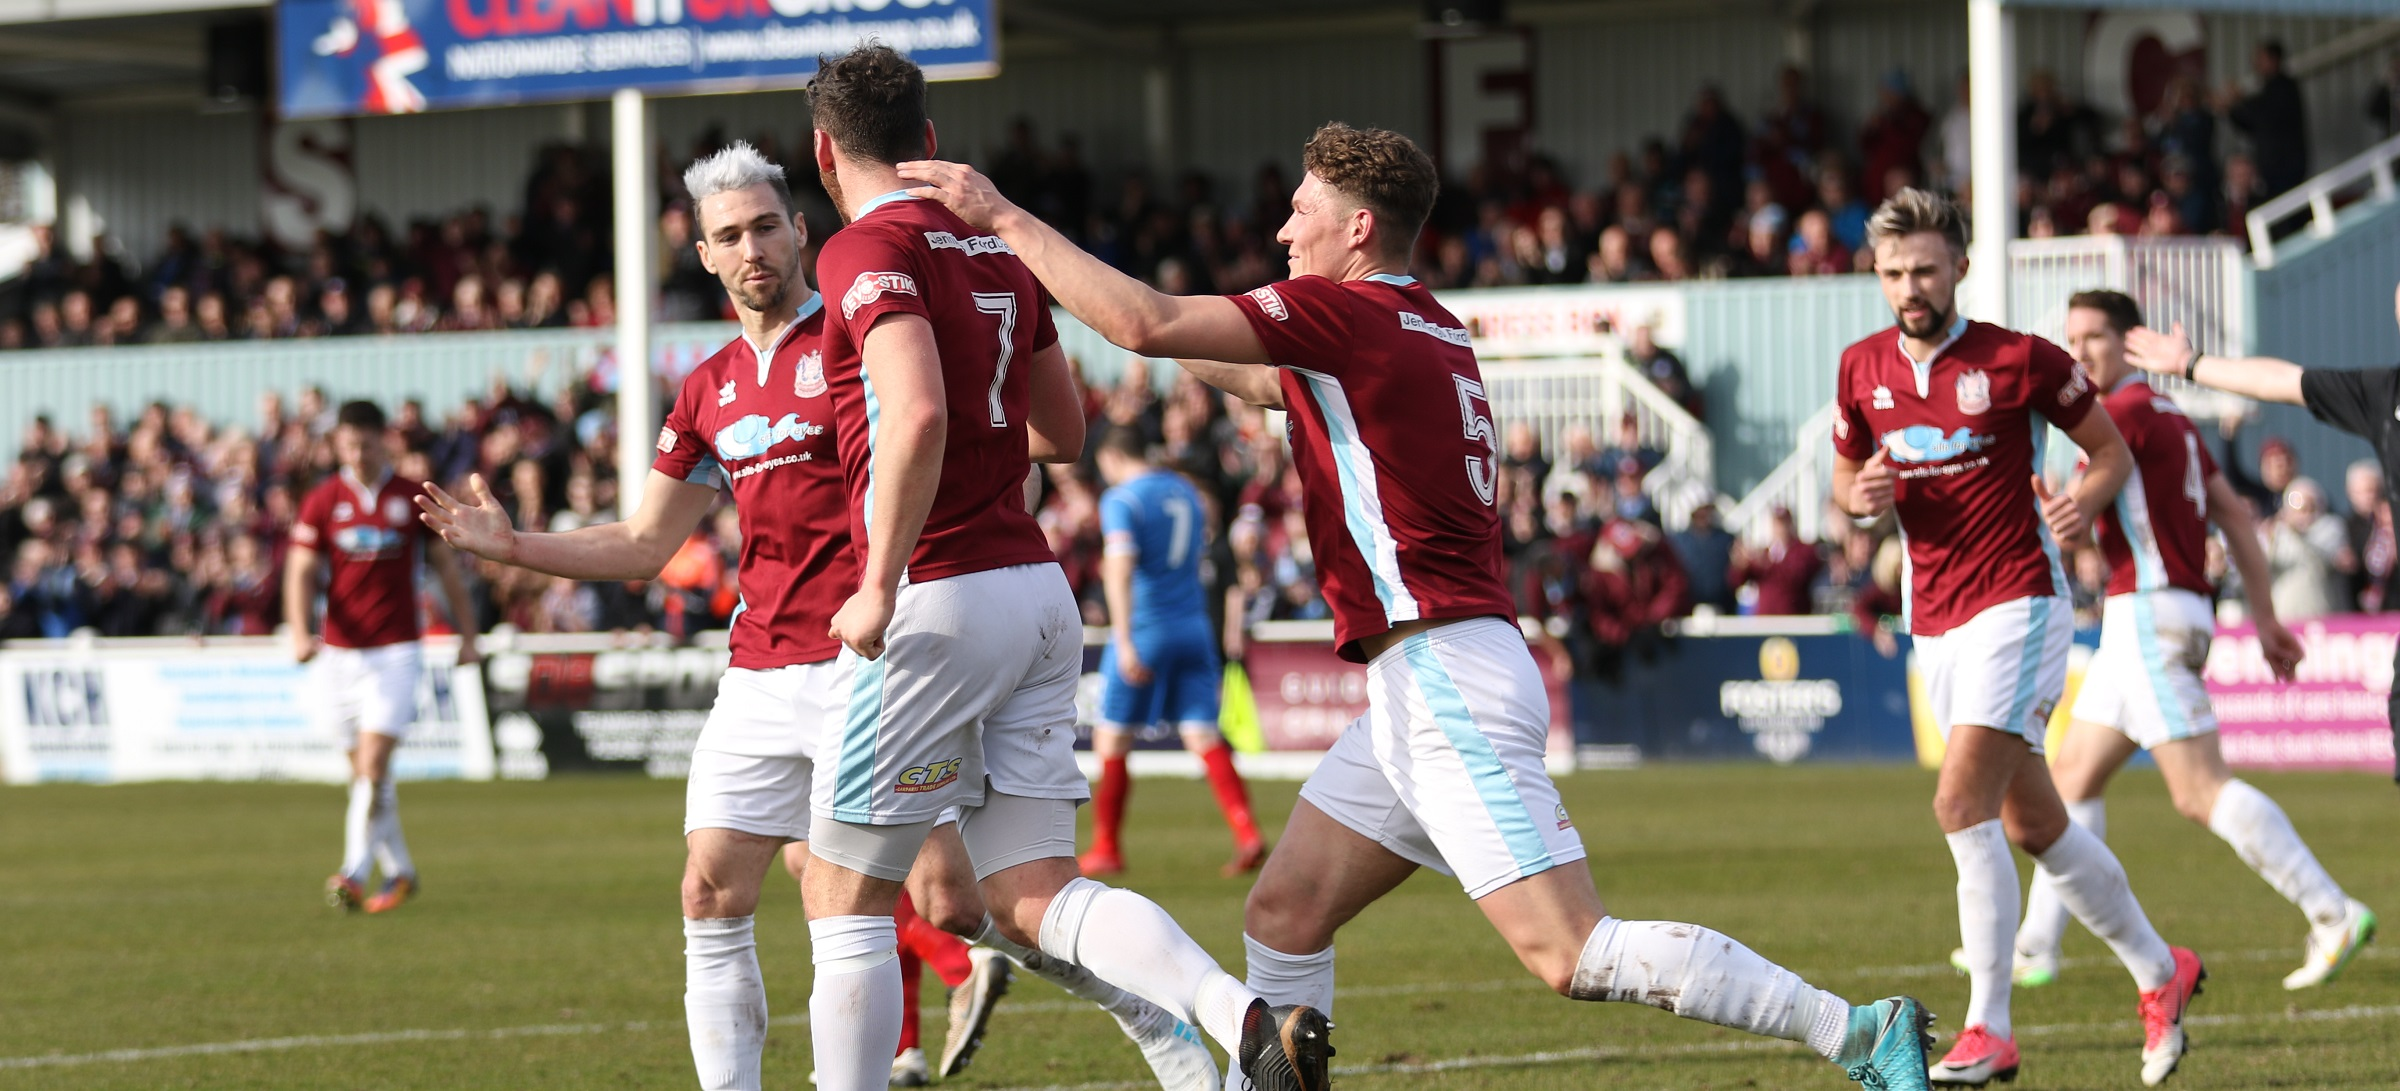 End of season party to be held at Mariners Park